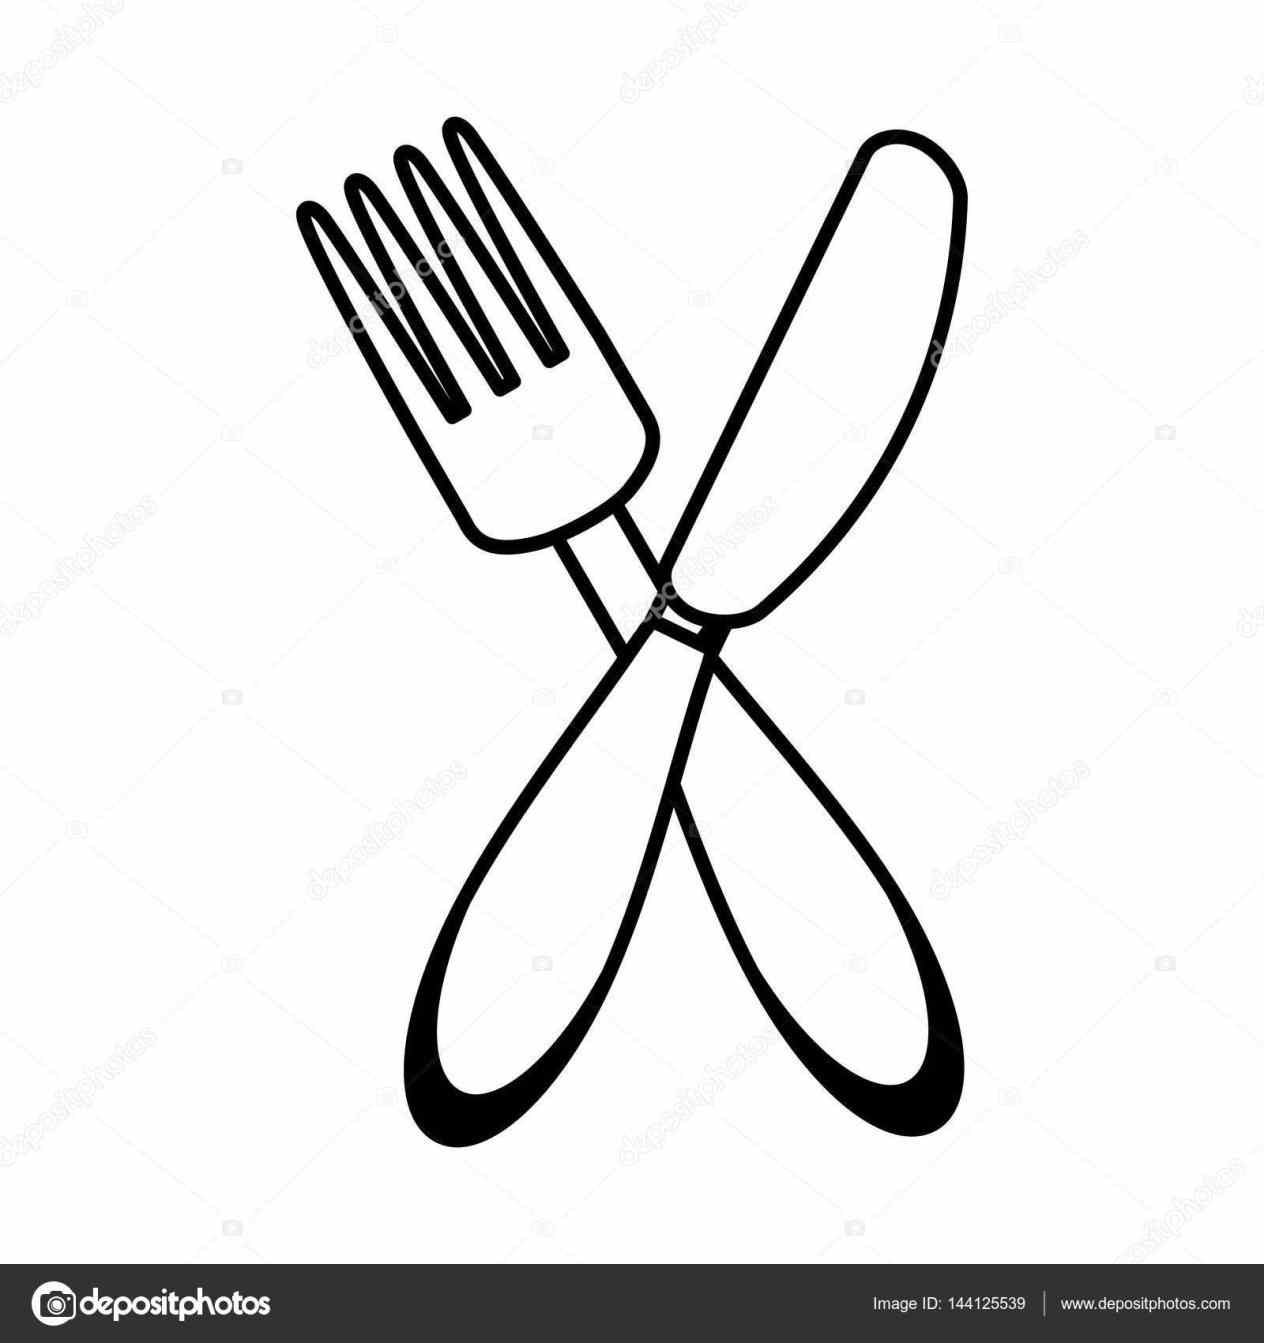 Spoon And Fork Drawing At Getdrawings